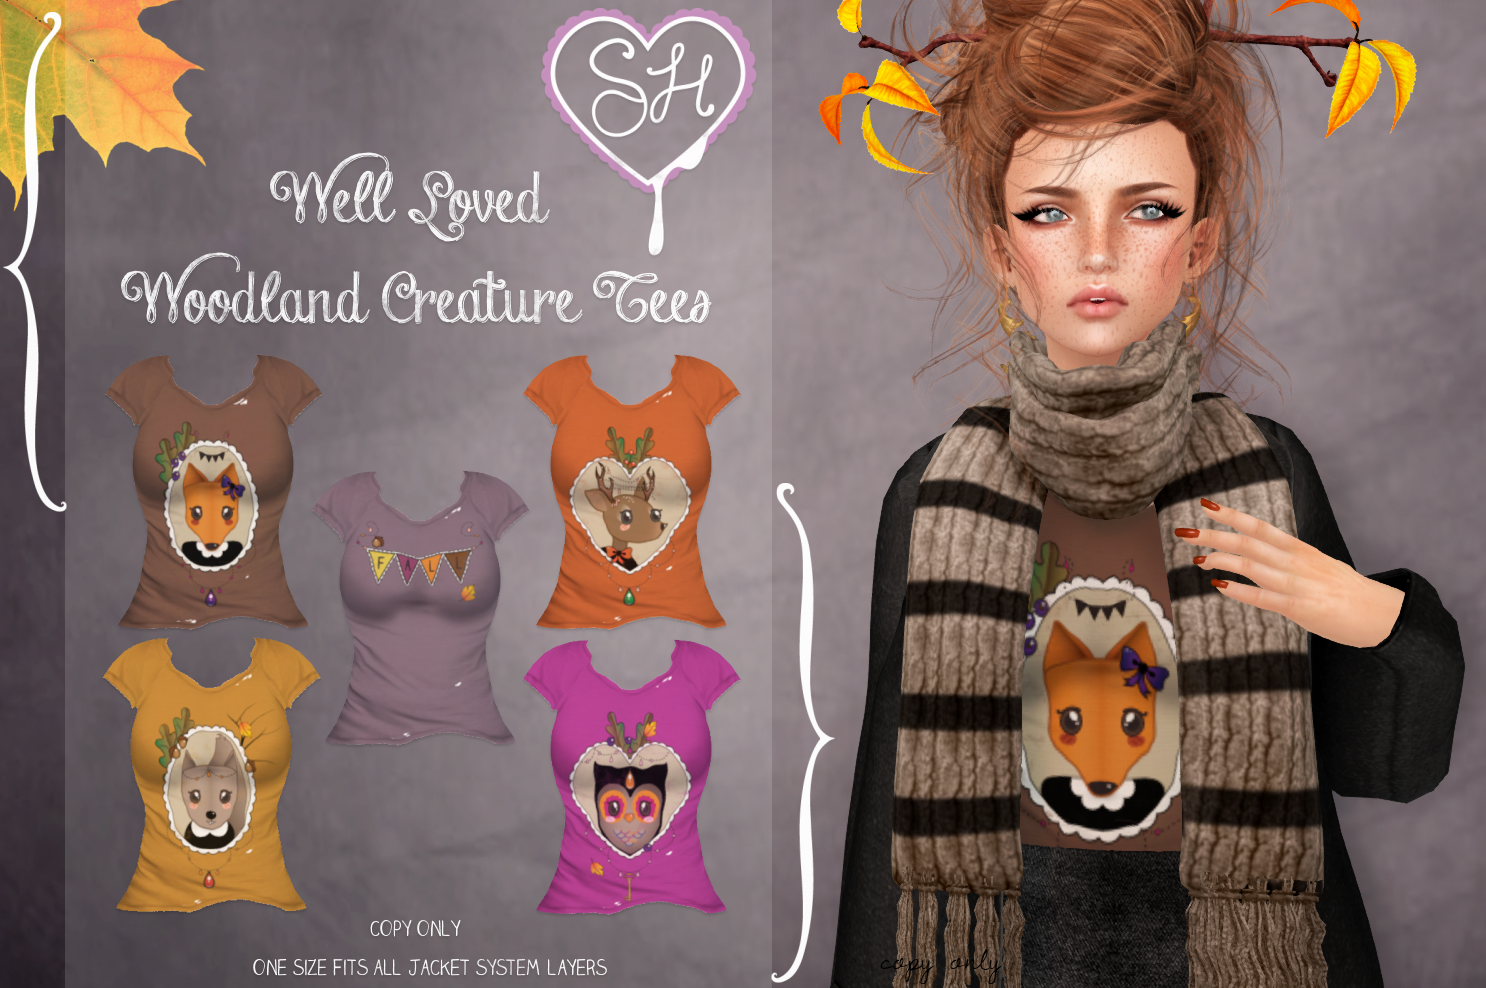 {Sugar Heart} Well Loved Woodland Creature Tees